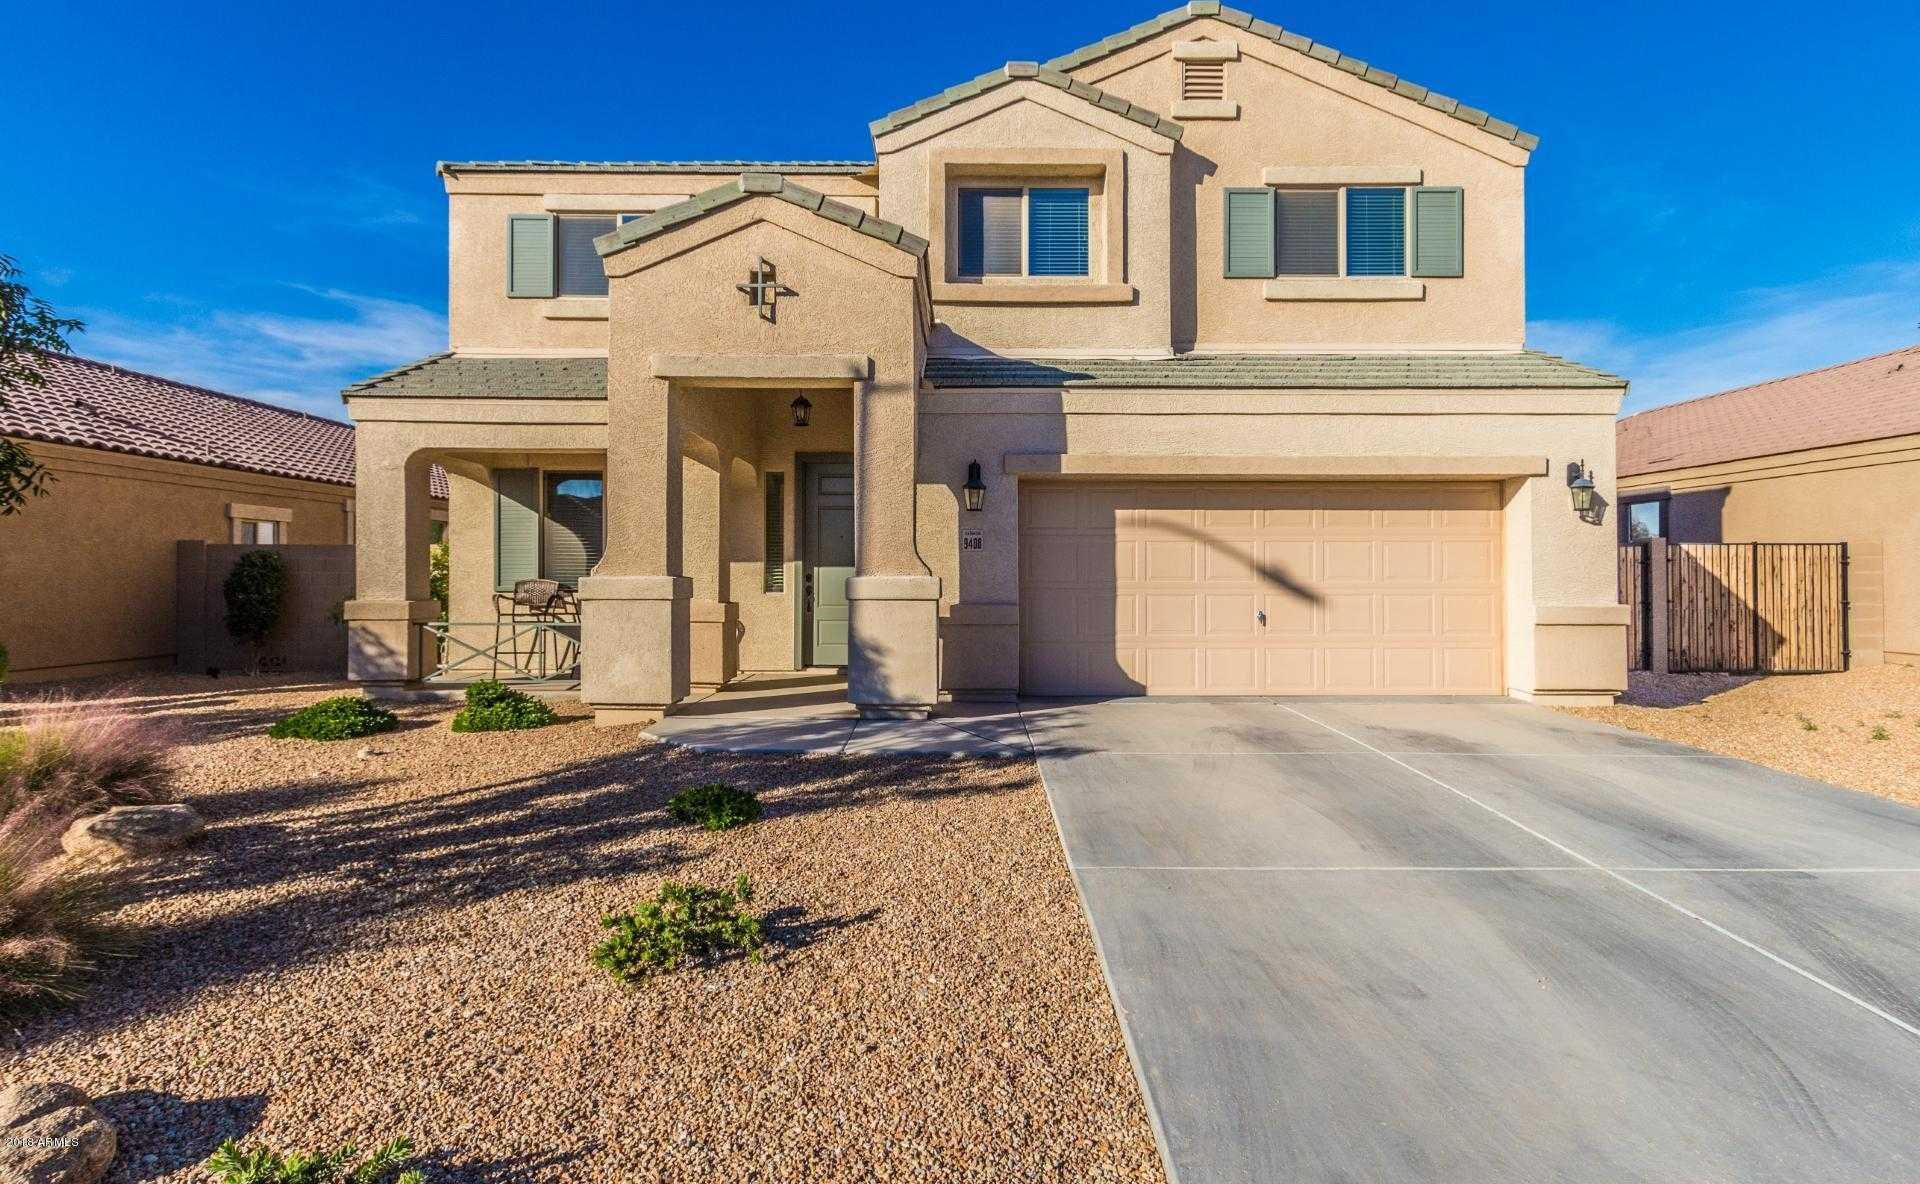 $379,000 - 4Br/3Ba - Home for Sale in Copper Cove Phase 2 2nd Amd, Glendale